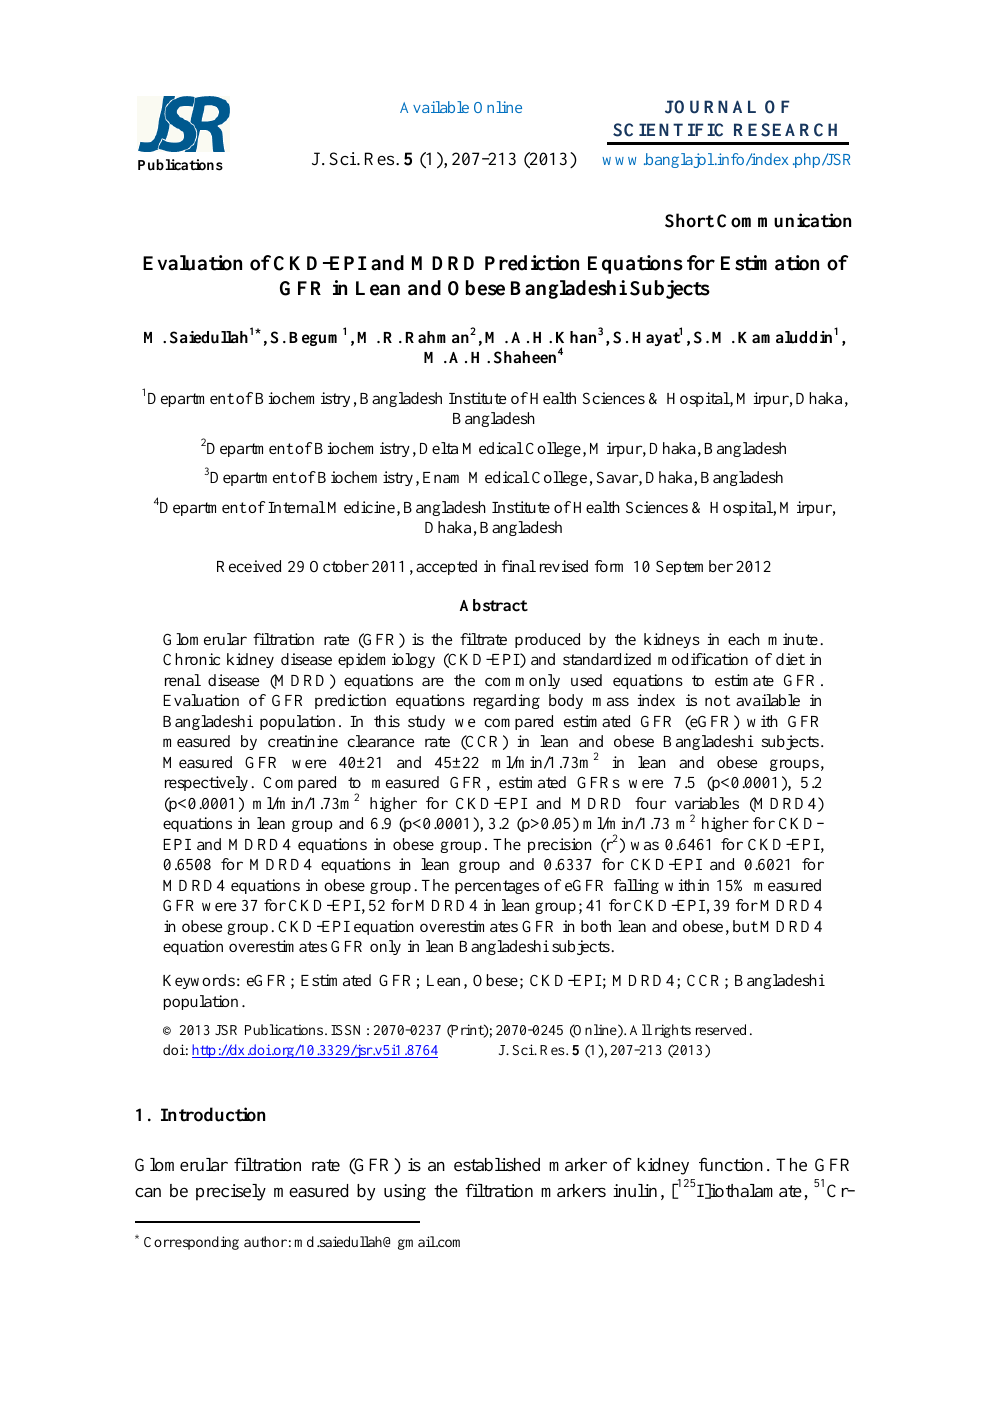 Evaluation of CKD-EPI and MDRD Prediction Equations for